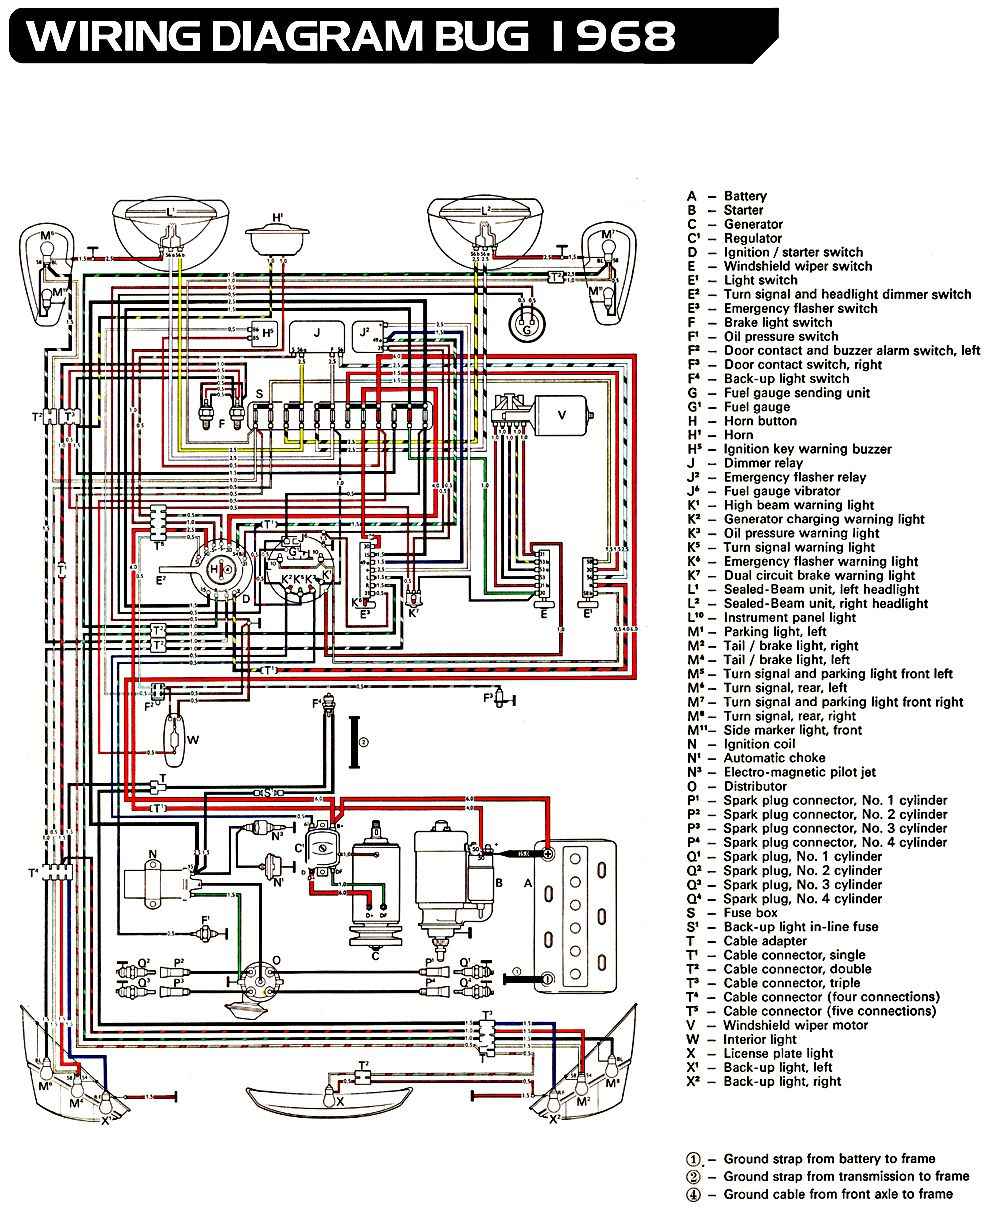 ignition switch parts wiring for 1973 vw type 3 wiring diagramvw bug ignition wiring diagram 73 [ 996 x 1211 Pixel ]